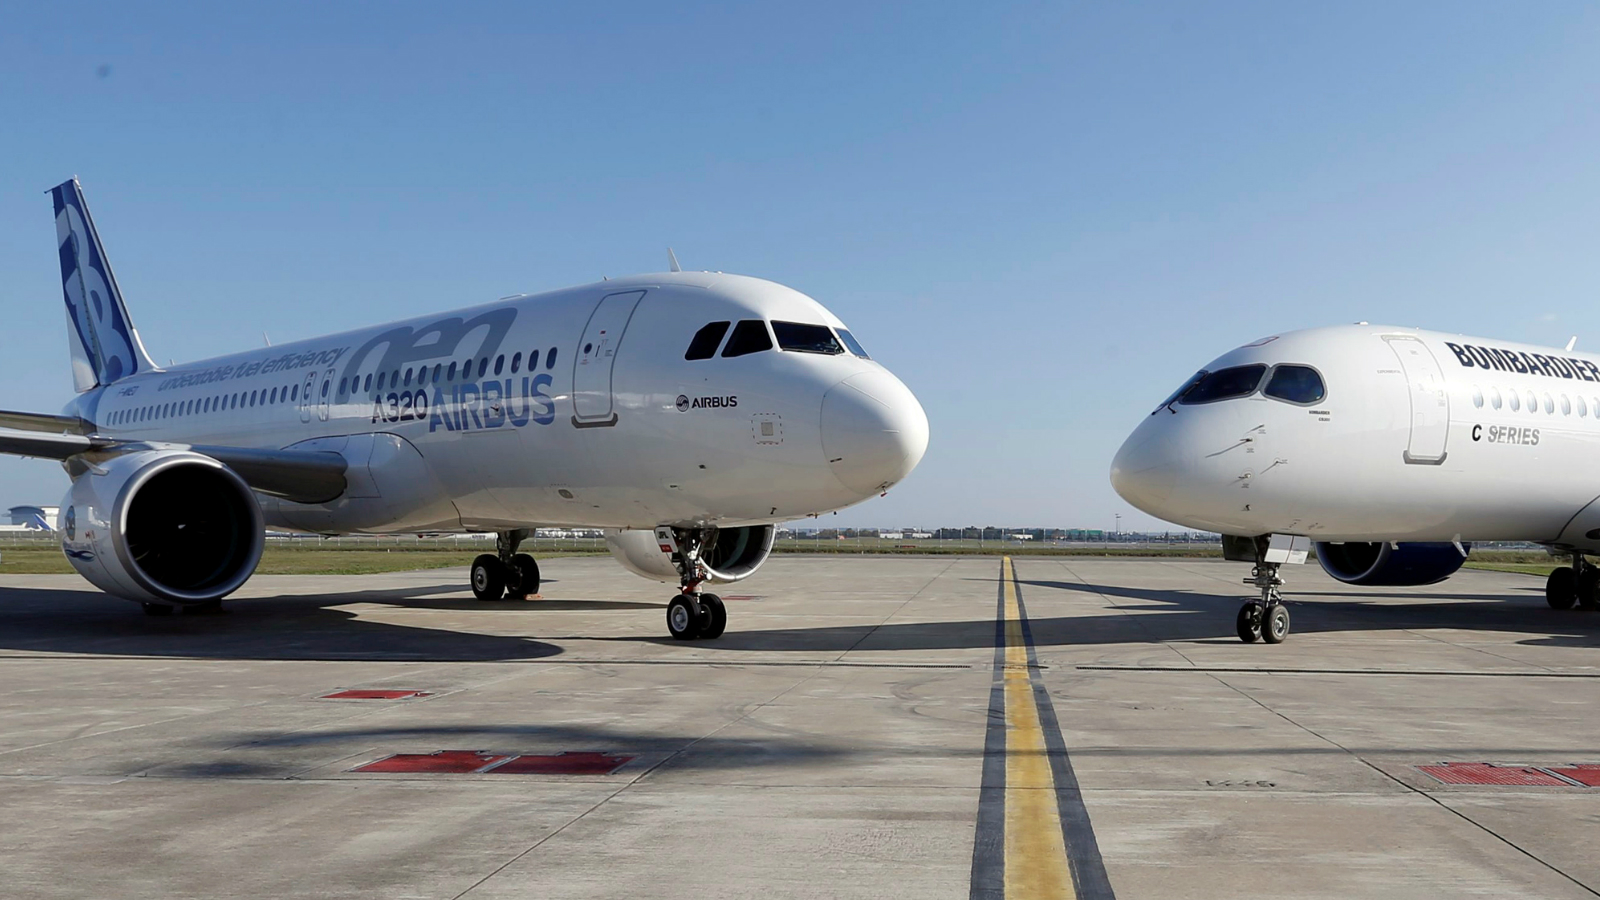 An Airbus A320neo aircraft and a Bombardier CSeries aircraft are pictured during a news conference to announce a partnership between Airbus and Bombardier on the C Series aircraft programme, in Colomiers near Toulouse, France, October 17, 2017.